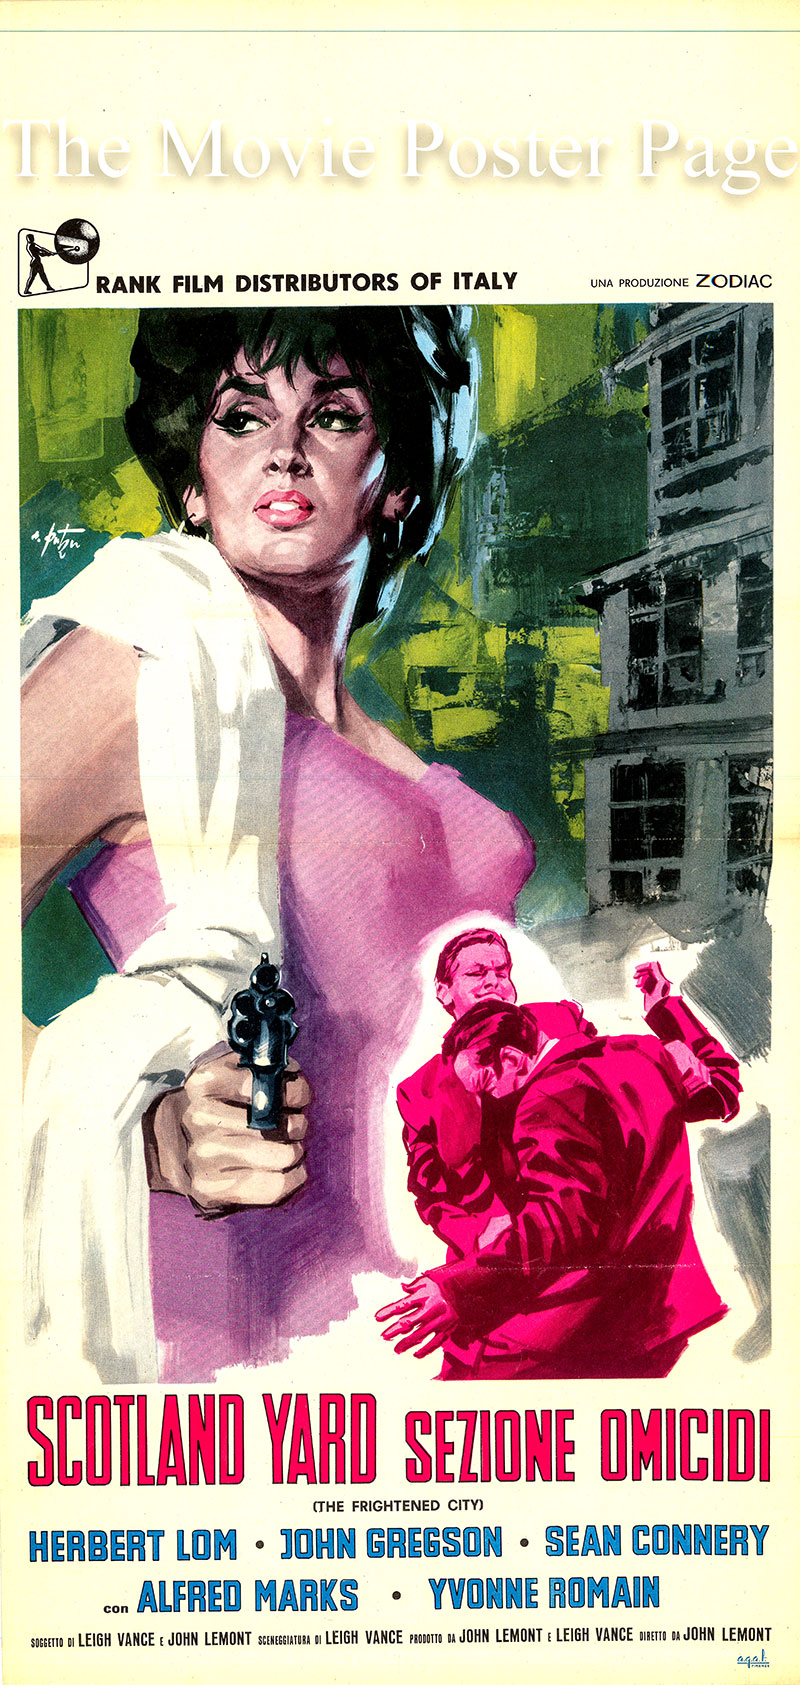 Pictured is an Italian locandina poster for the 1961 John Lemont film <i>Frightened City</i> based on a story by Leigh Vance and John Lemont, screenplay by Leigh Vance and starring Sean Connery as Paddy Demion.